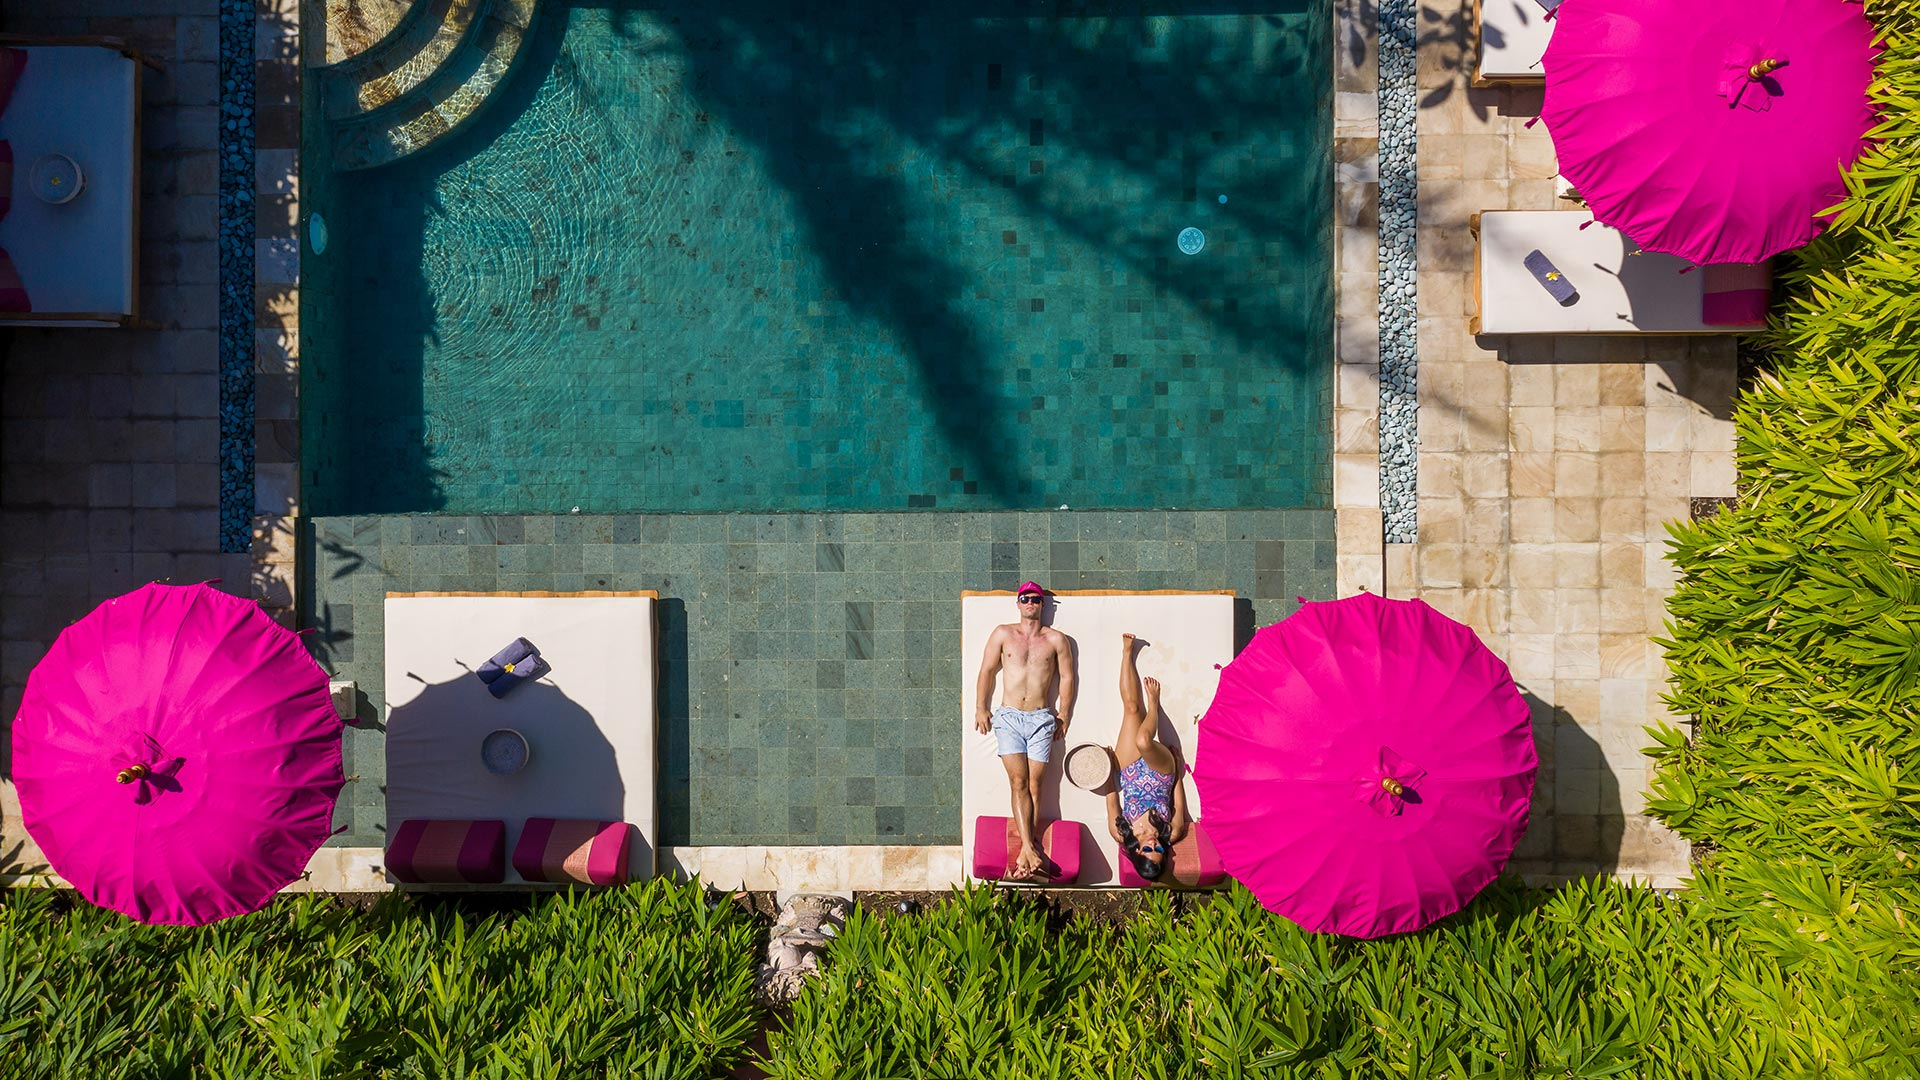 It's a brand new boutique hotel located in the western side of Sanur village, Denpasar. Like its name, Pink hotel has a dominant pink colors in every sides...